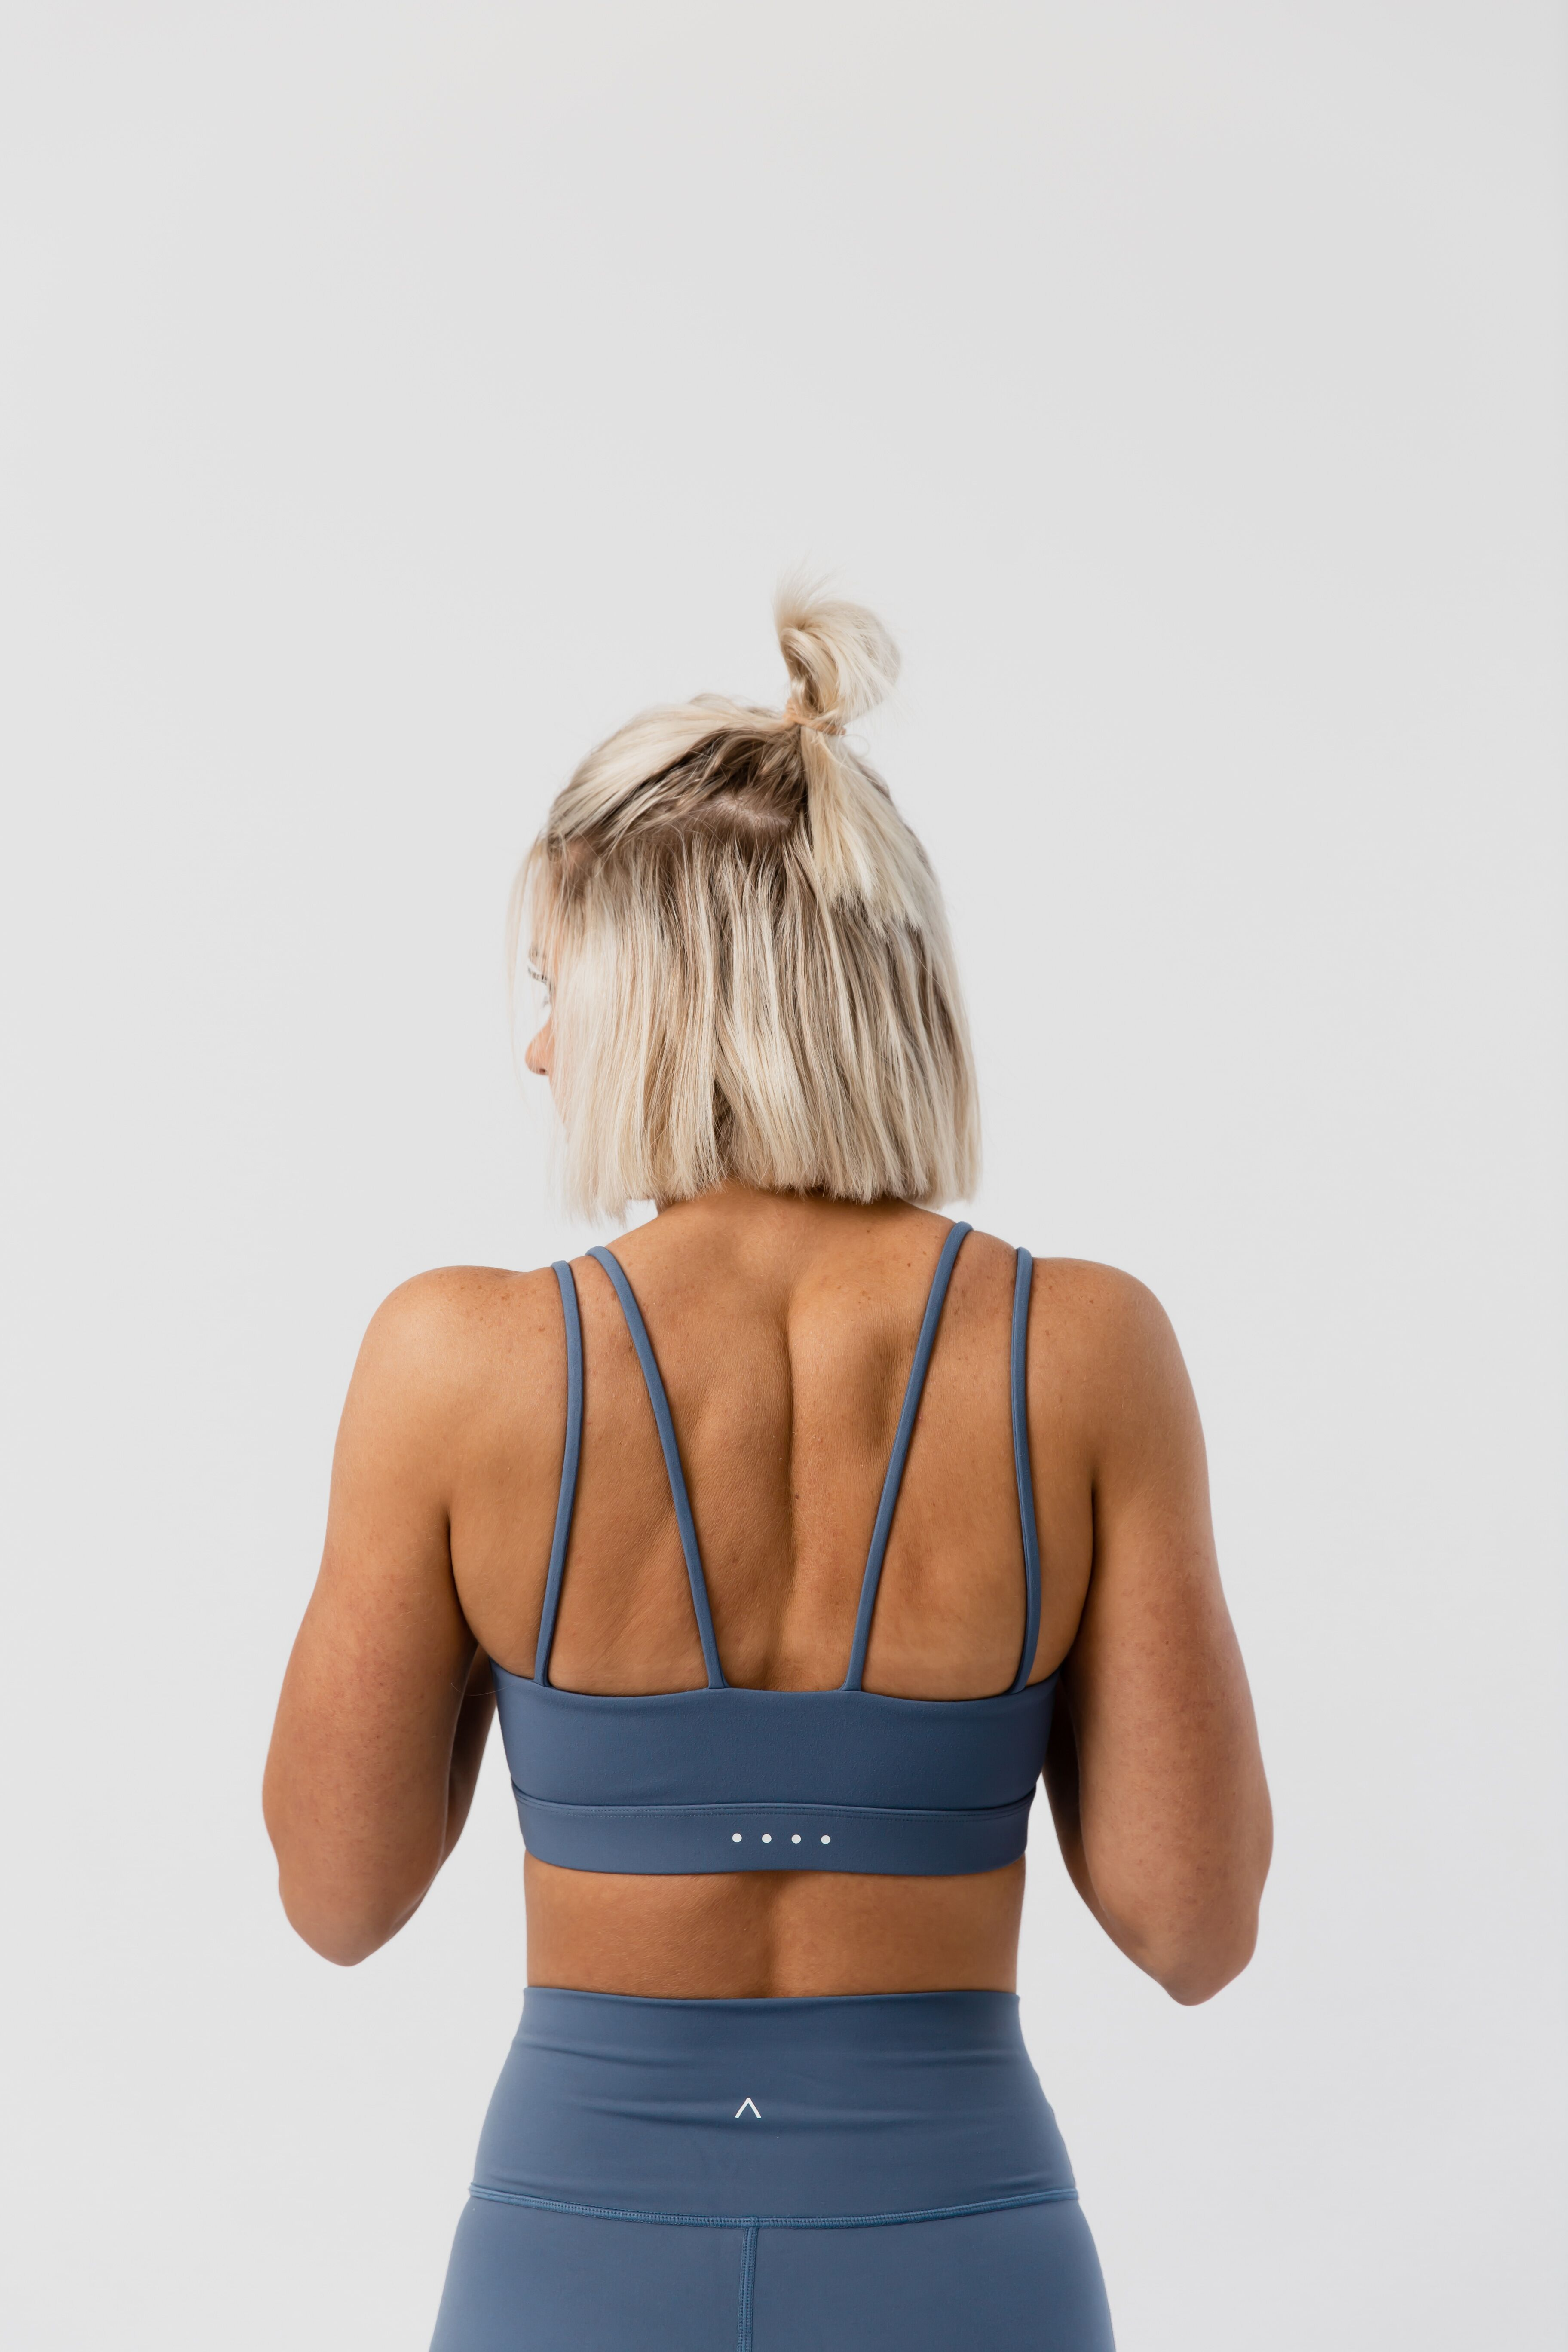 Acta Active Wear With A Purpose Acta Wear Coupon 15 Off Gym Workout Outfits Active Wear Athletic Outfits